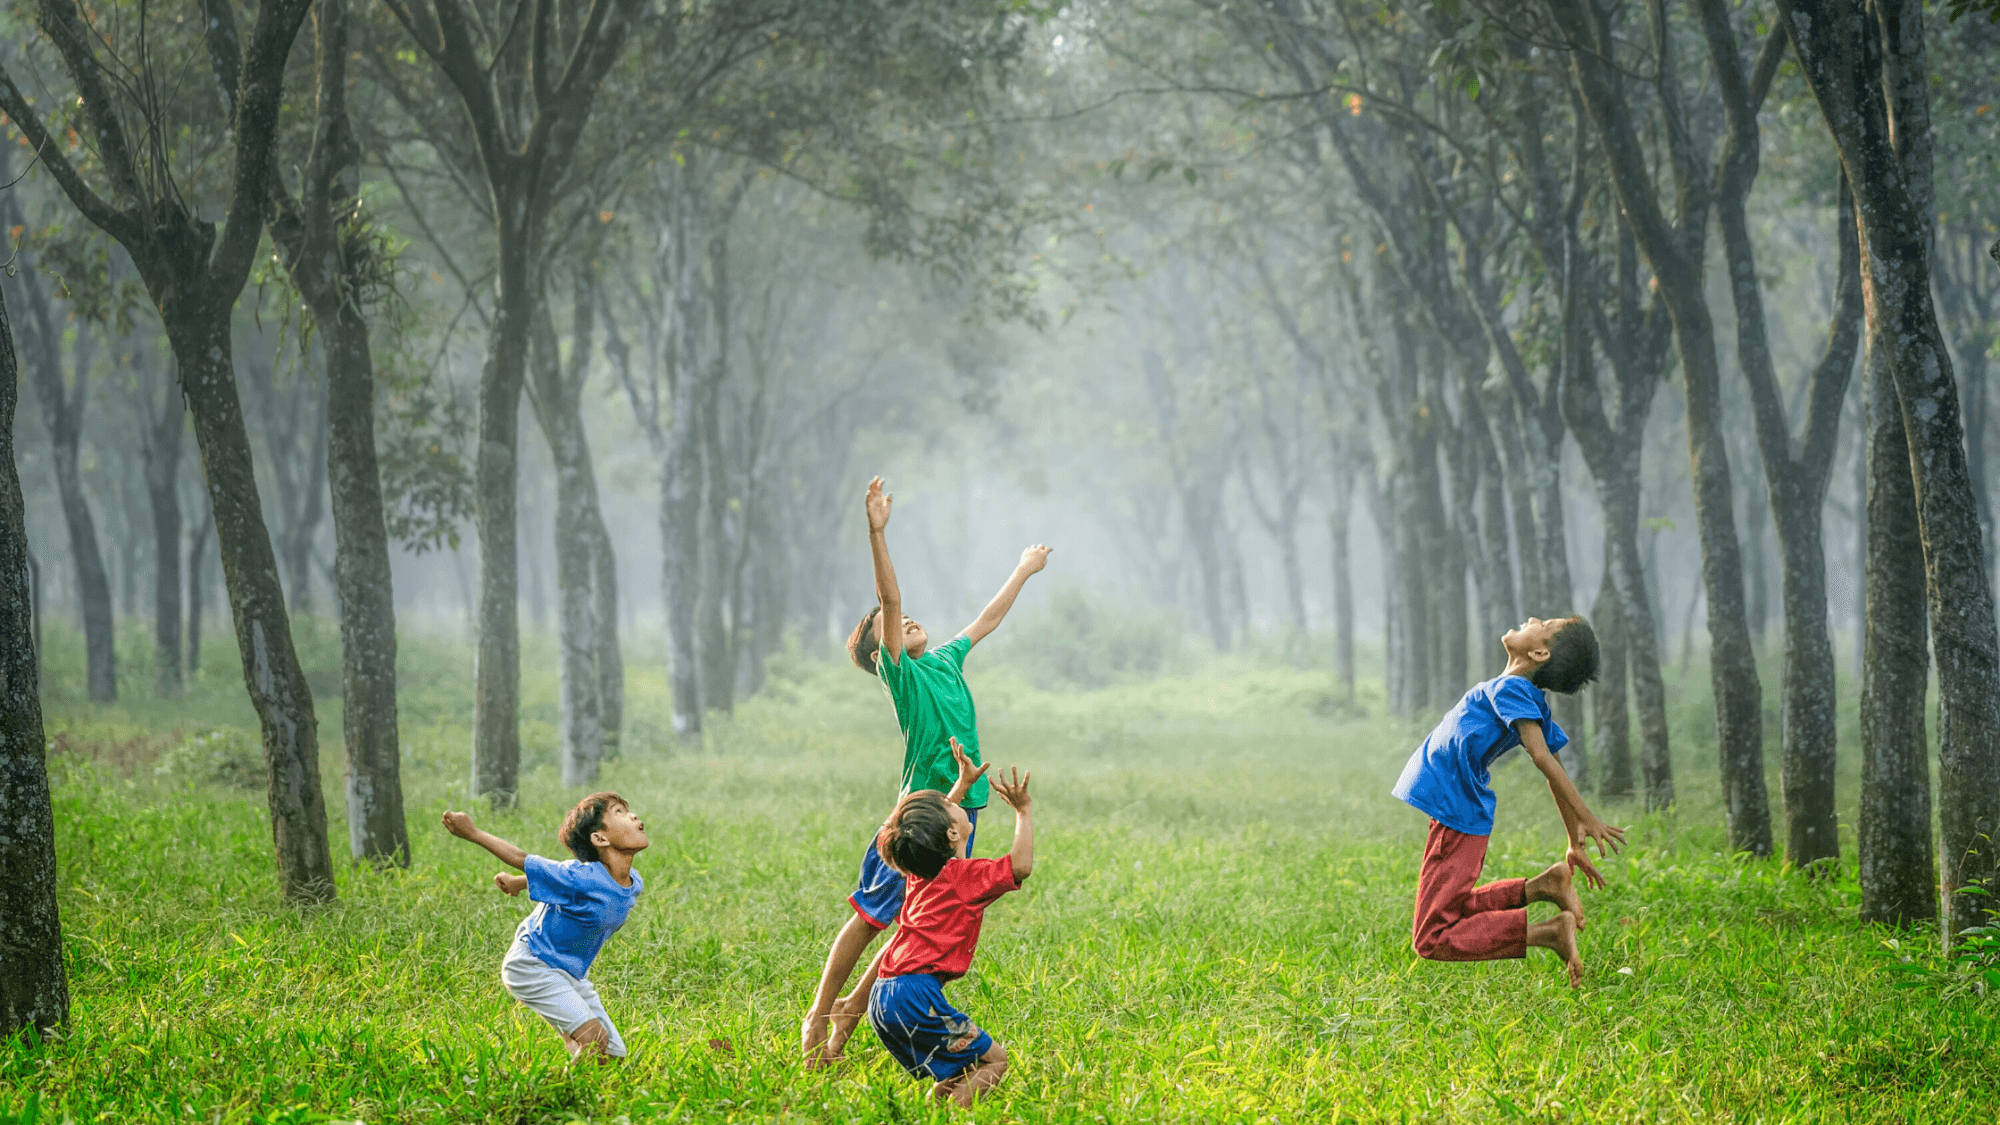 Children jumping-embrace the unexpected